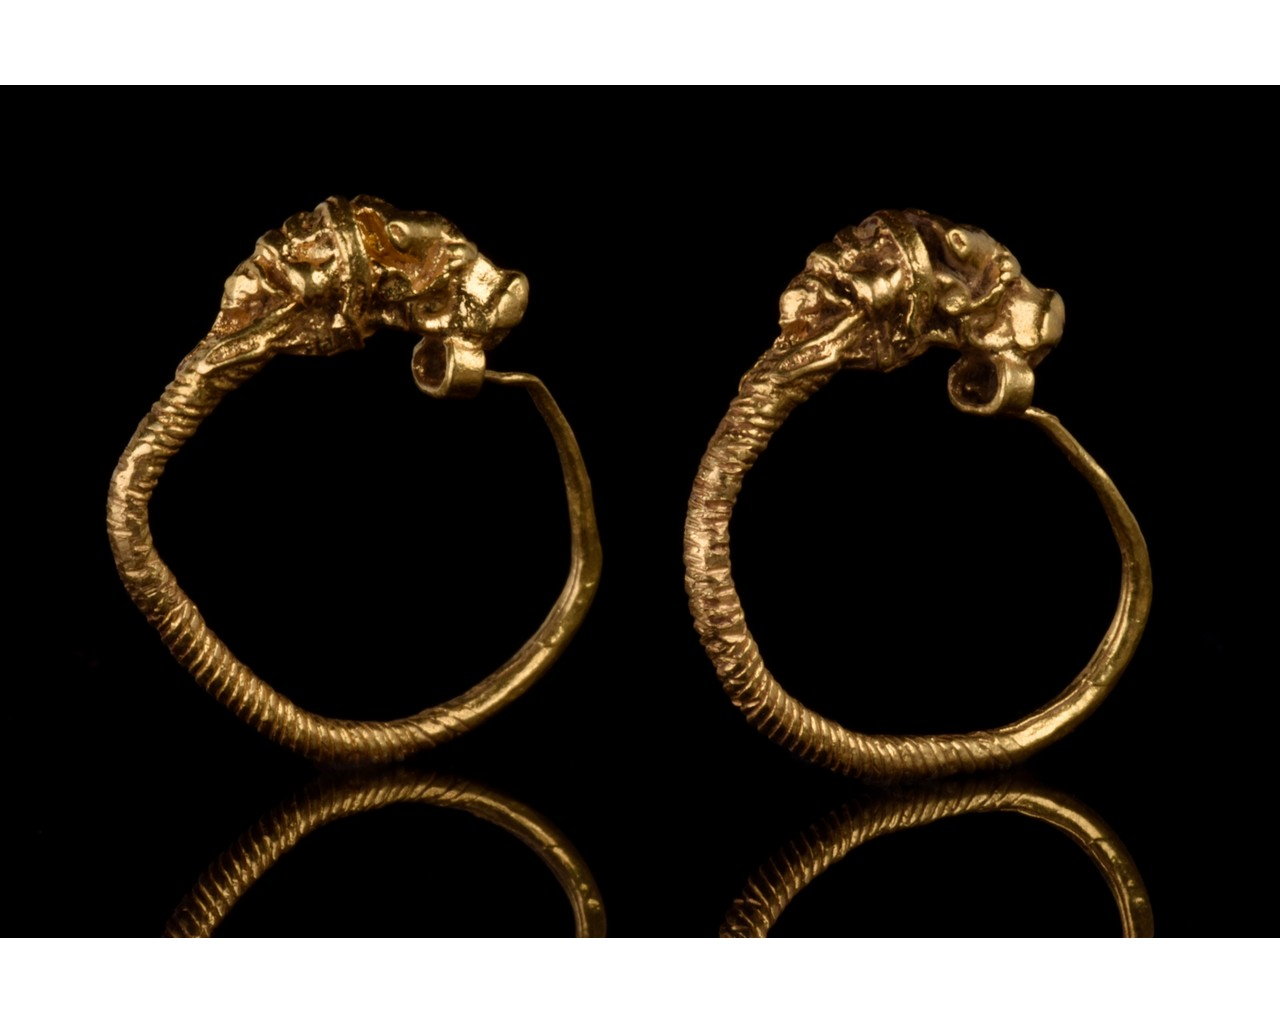 GREEK HELLENISTIC GOLD EARRINGS WITH LIONS - FULL ANALYSIS - Image 3 of 8